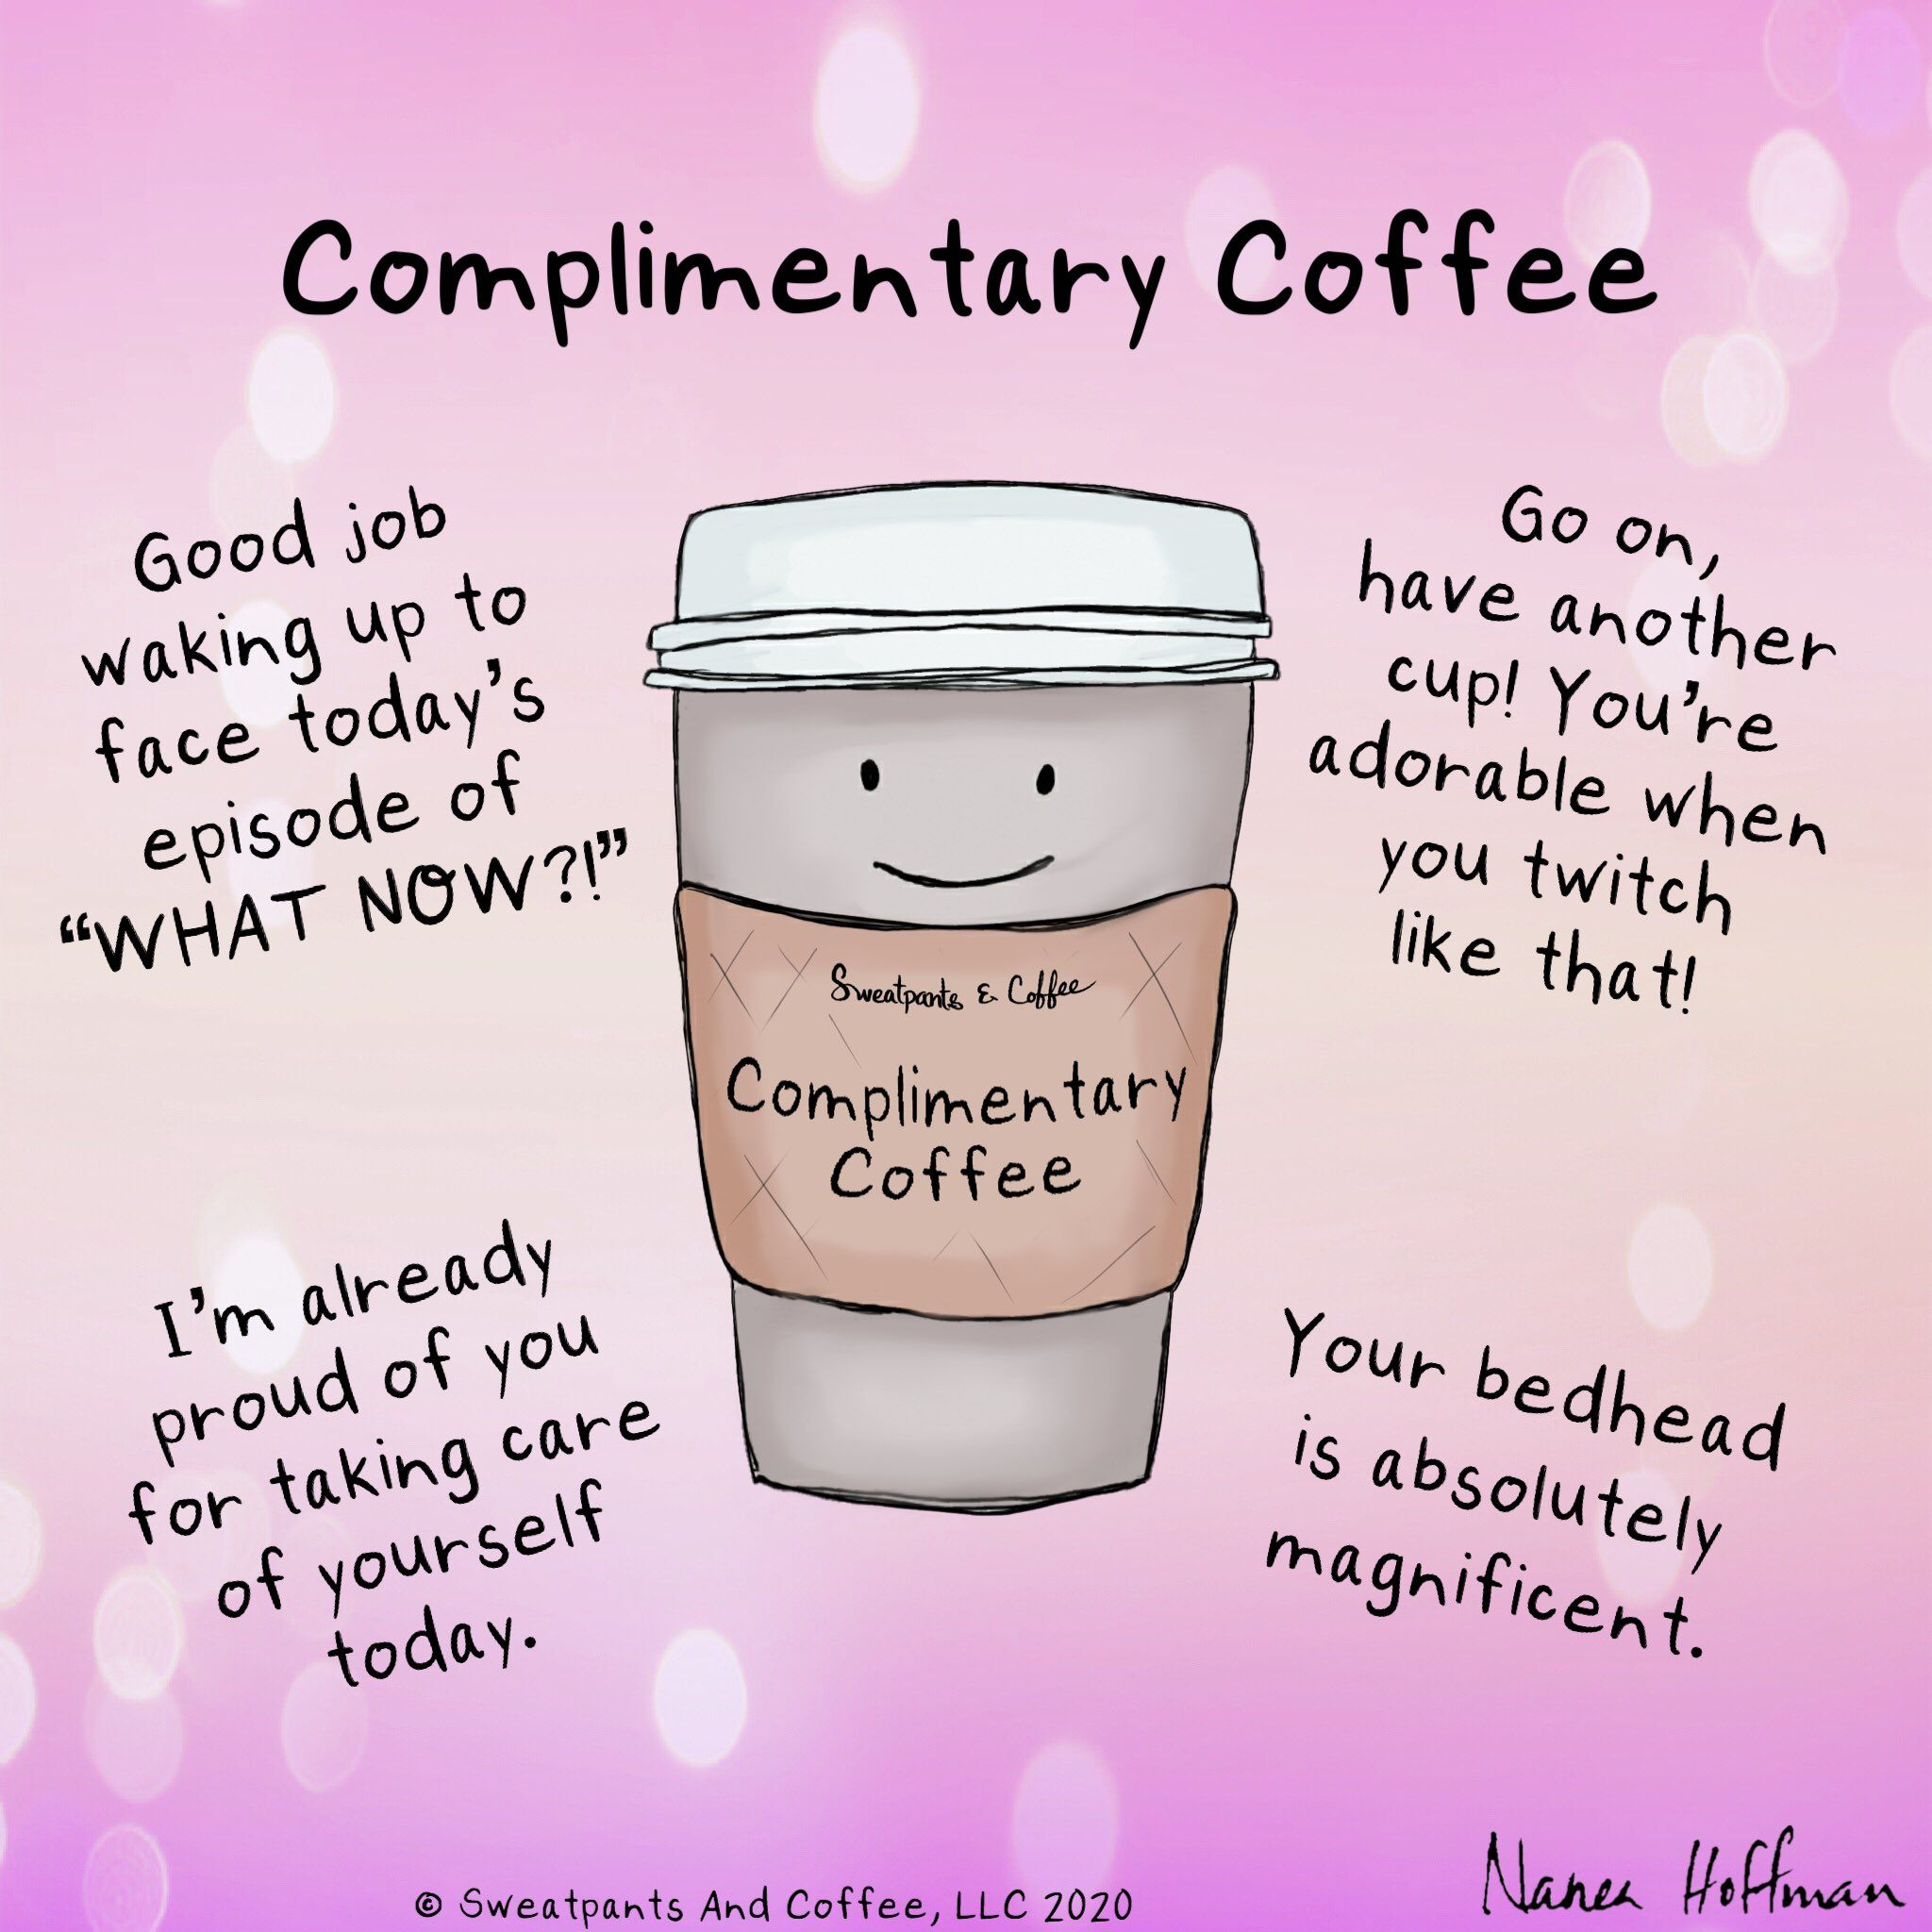 Sweatpants Coffee On Twitter In 2021 Coffee Obsession Coffee Quotes Coffee Humor